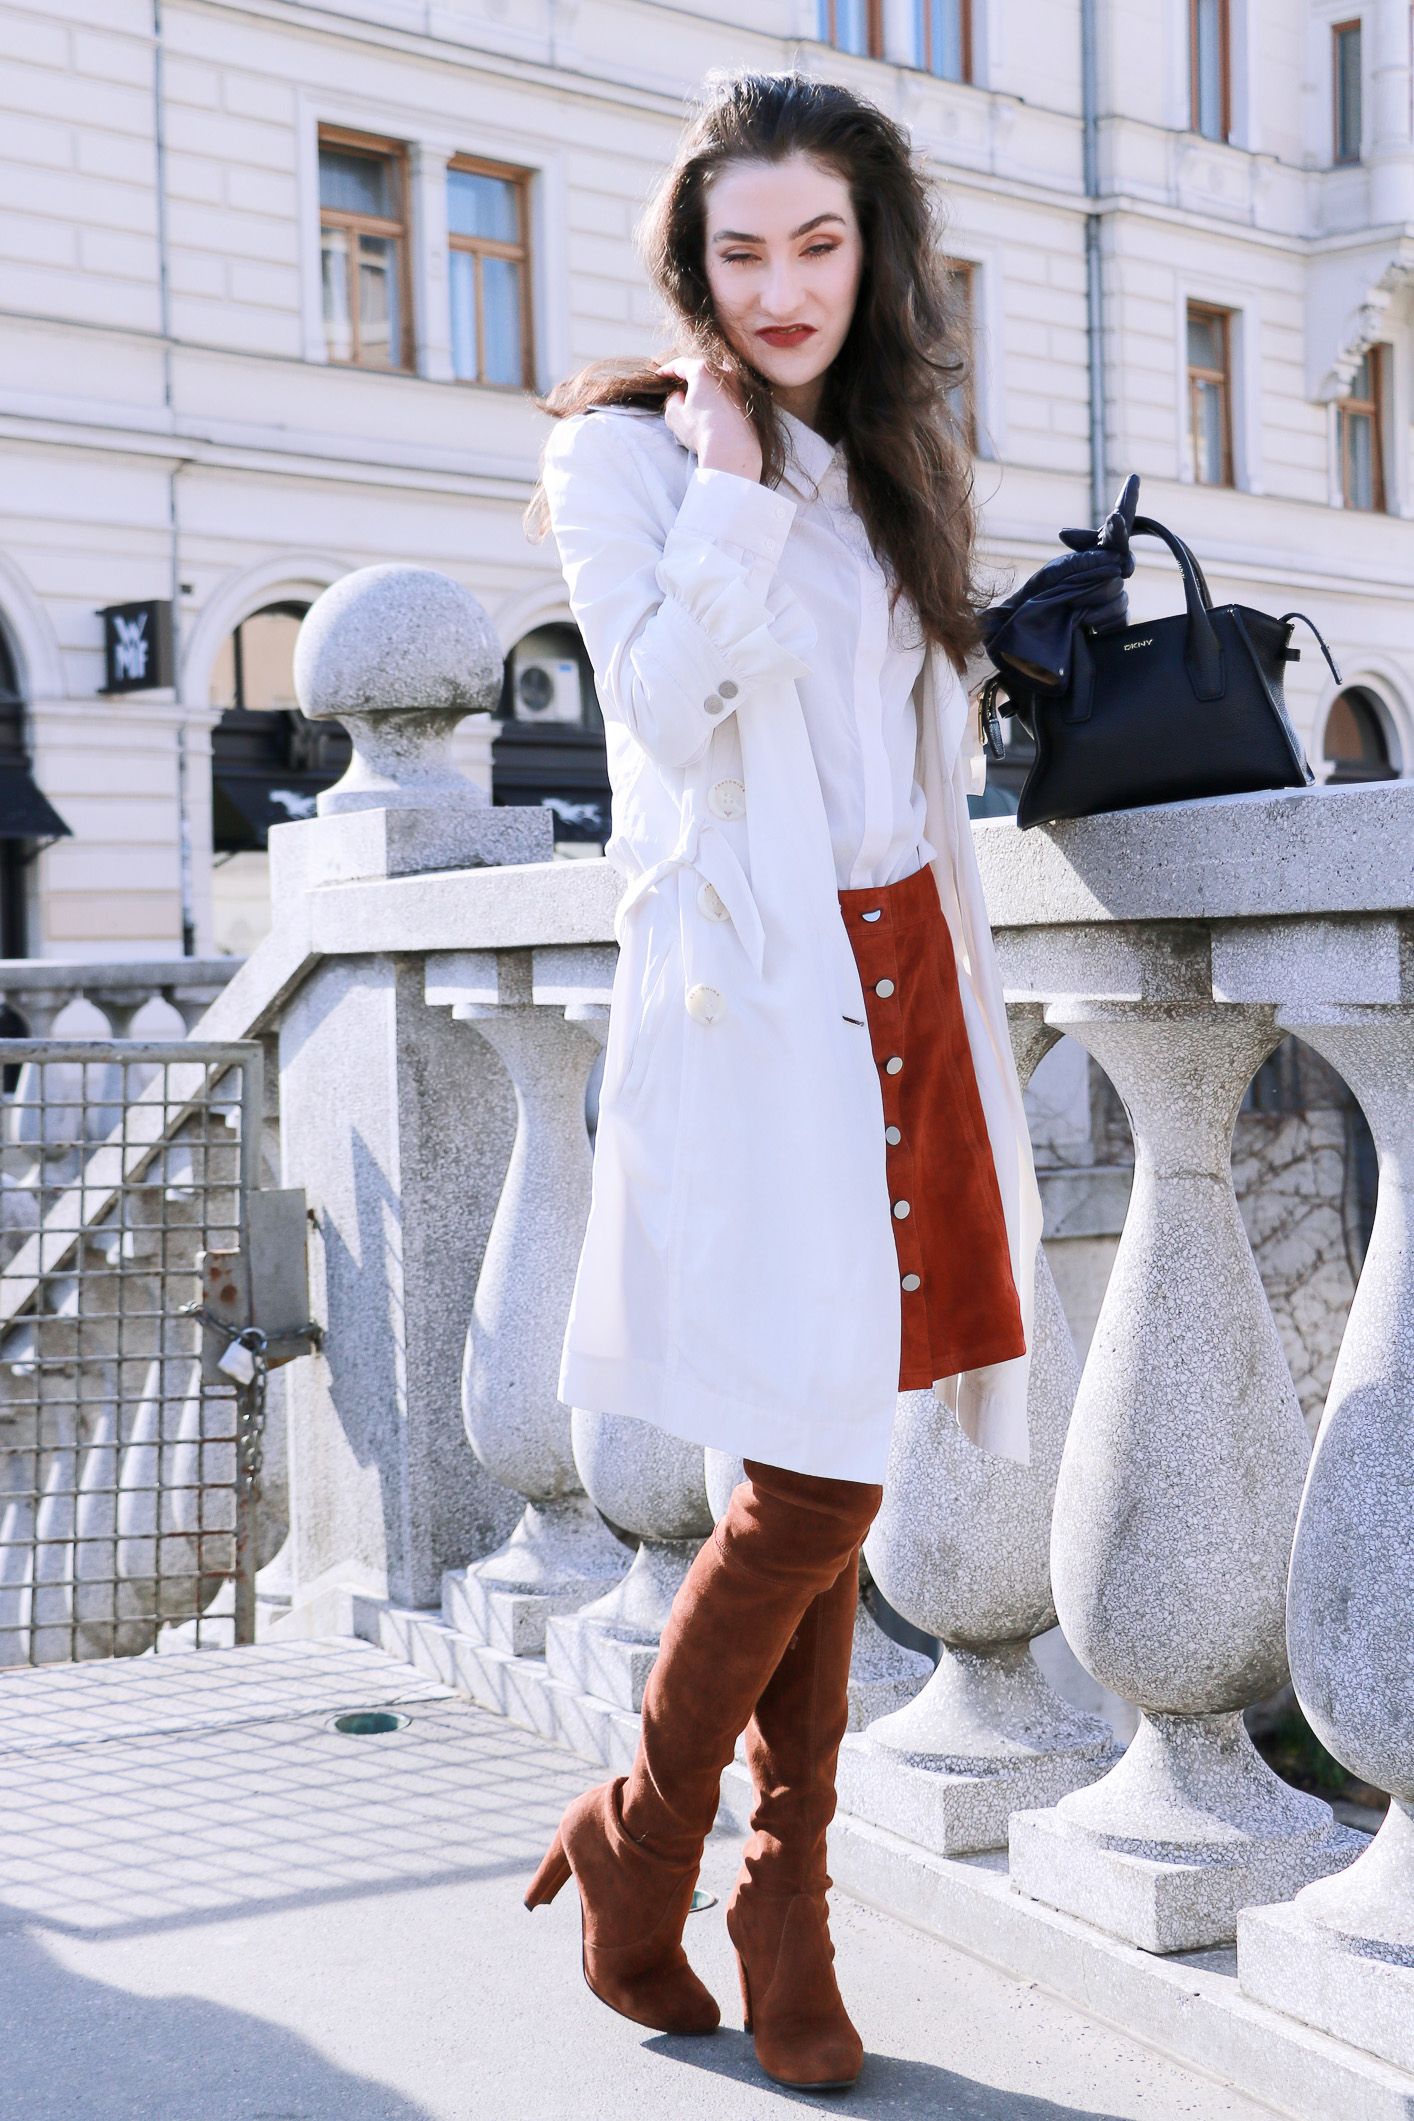 Fashion blogger Veronika Lipar of Brunette From Wall Street sharing how to style a long thin trench coat this spring